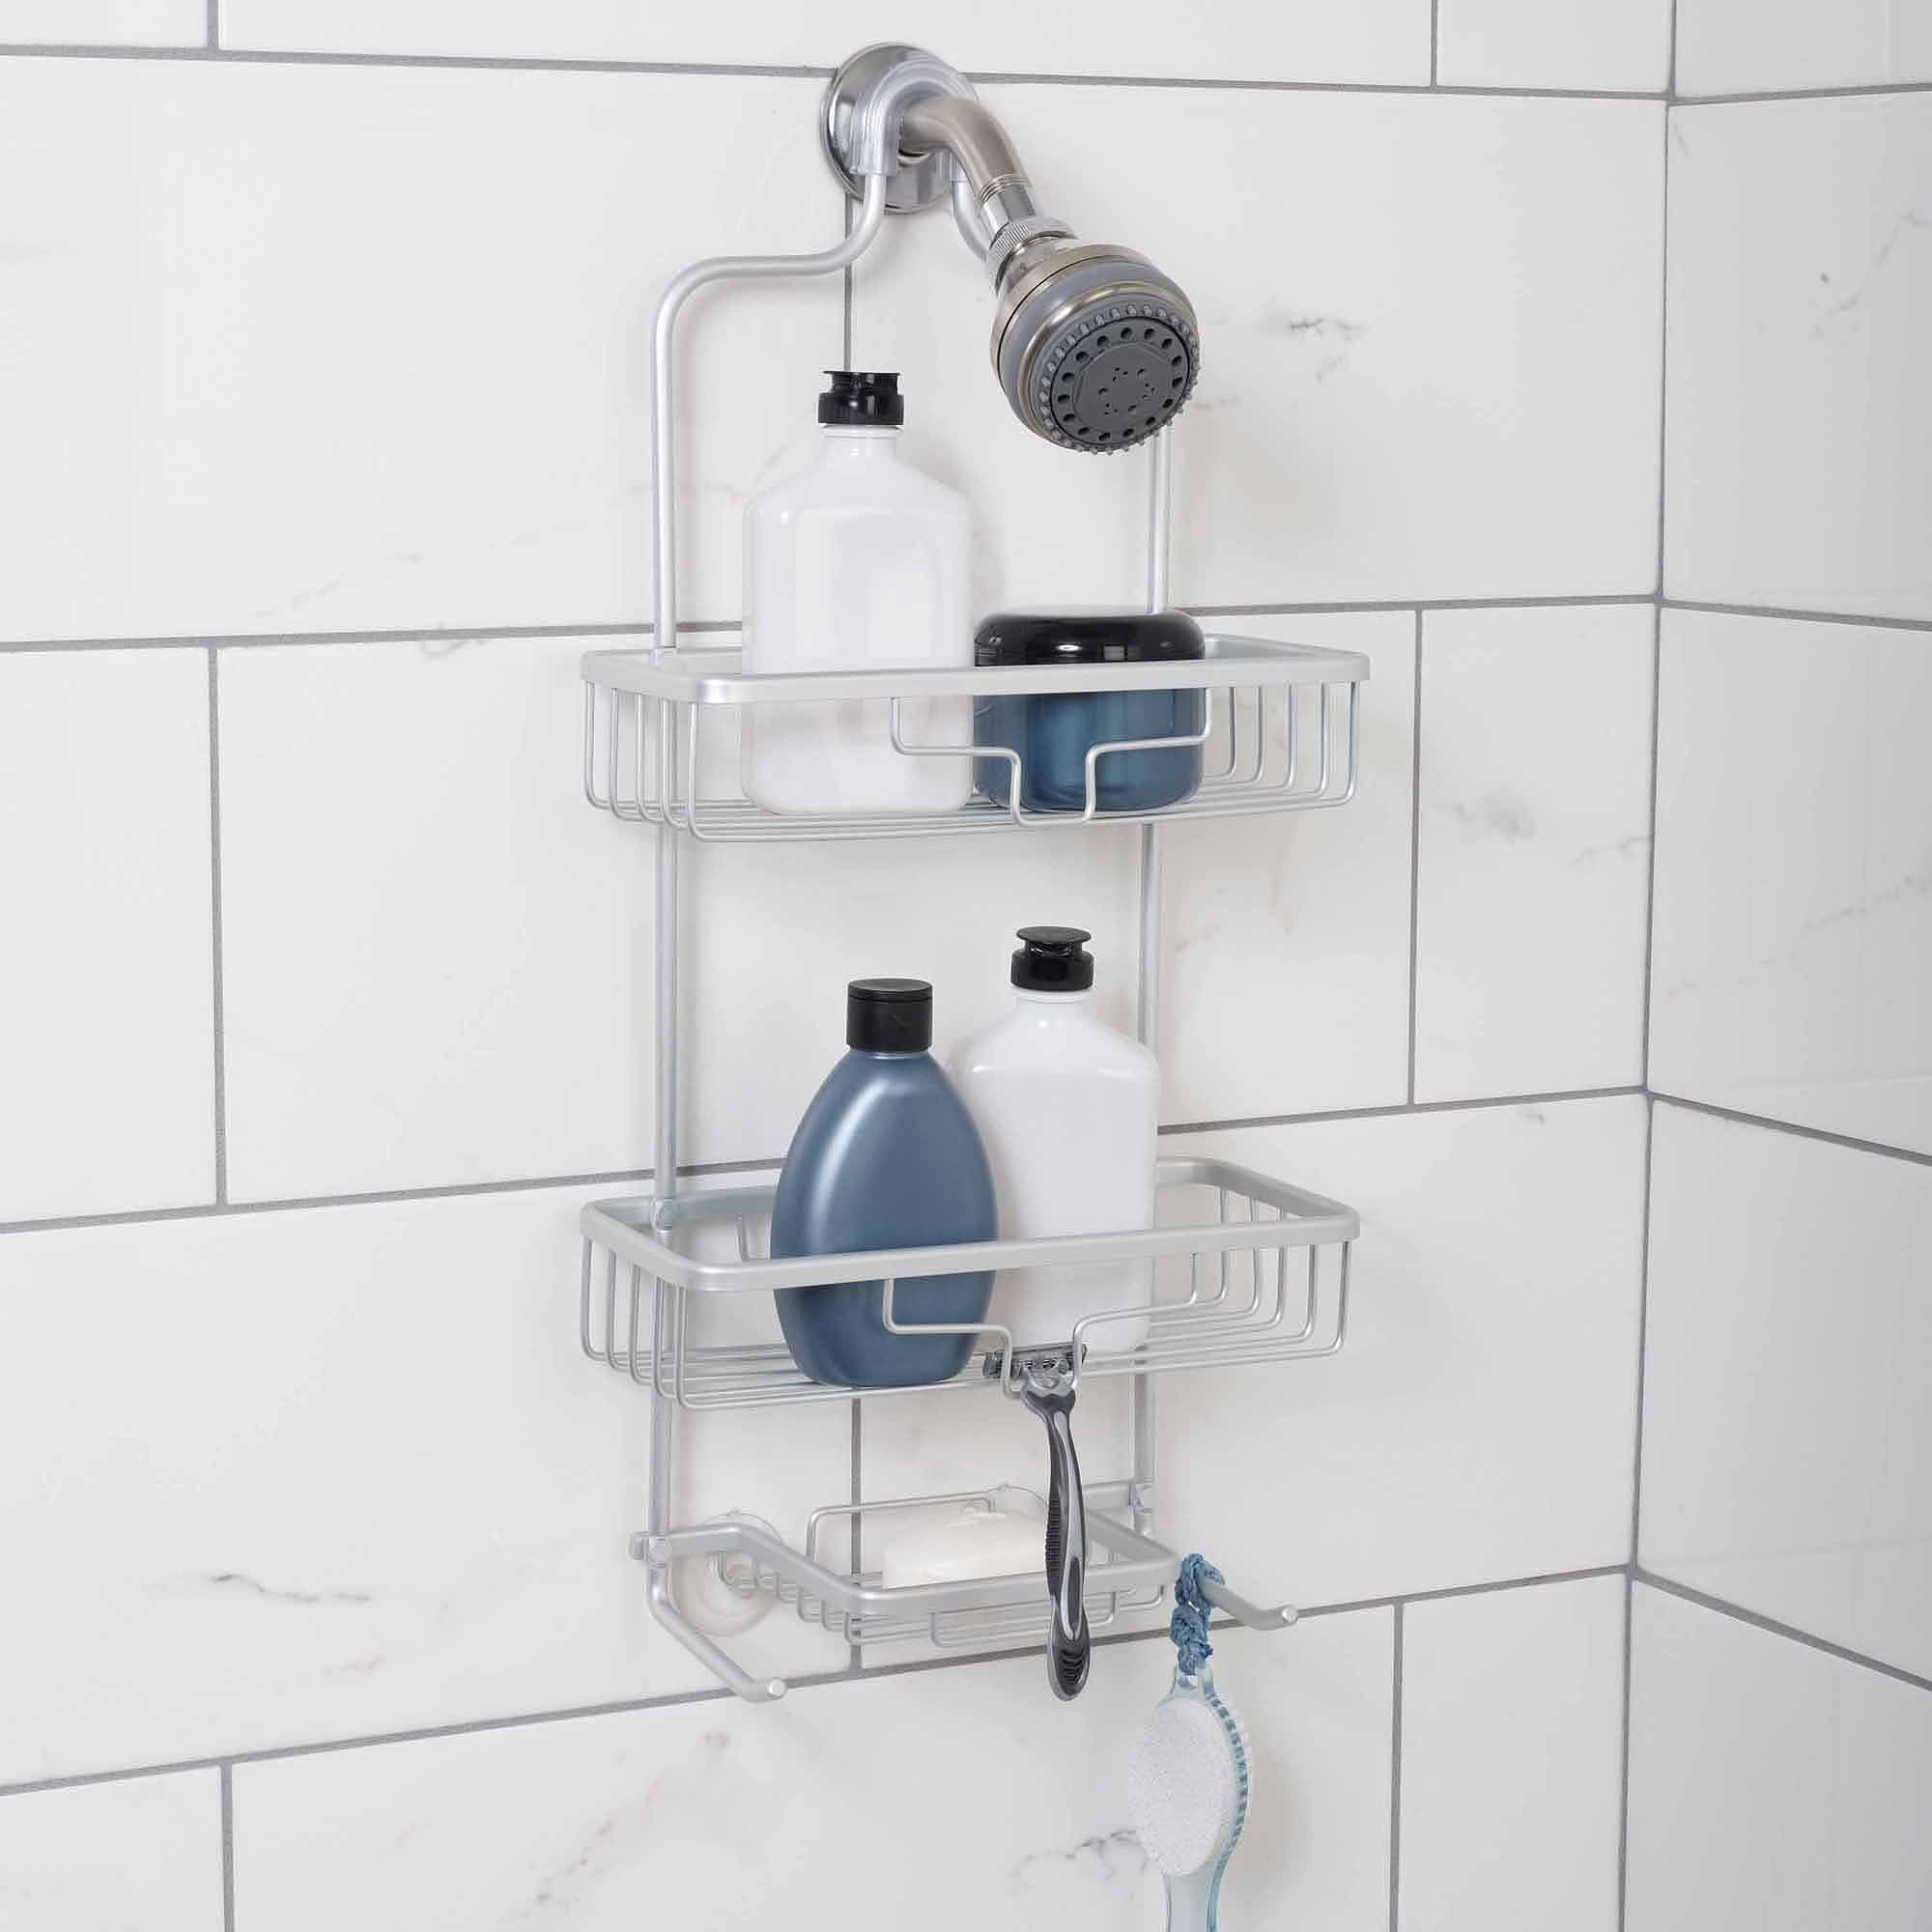 Zenna Home NeverRust Aluminum Shower Caddy with 2 Bucket Shelves, Satin Chrome by Zenith Products Corp